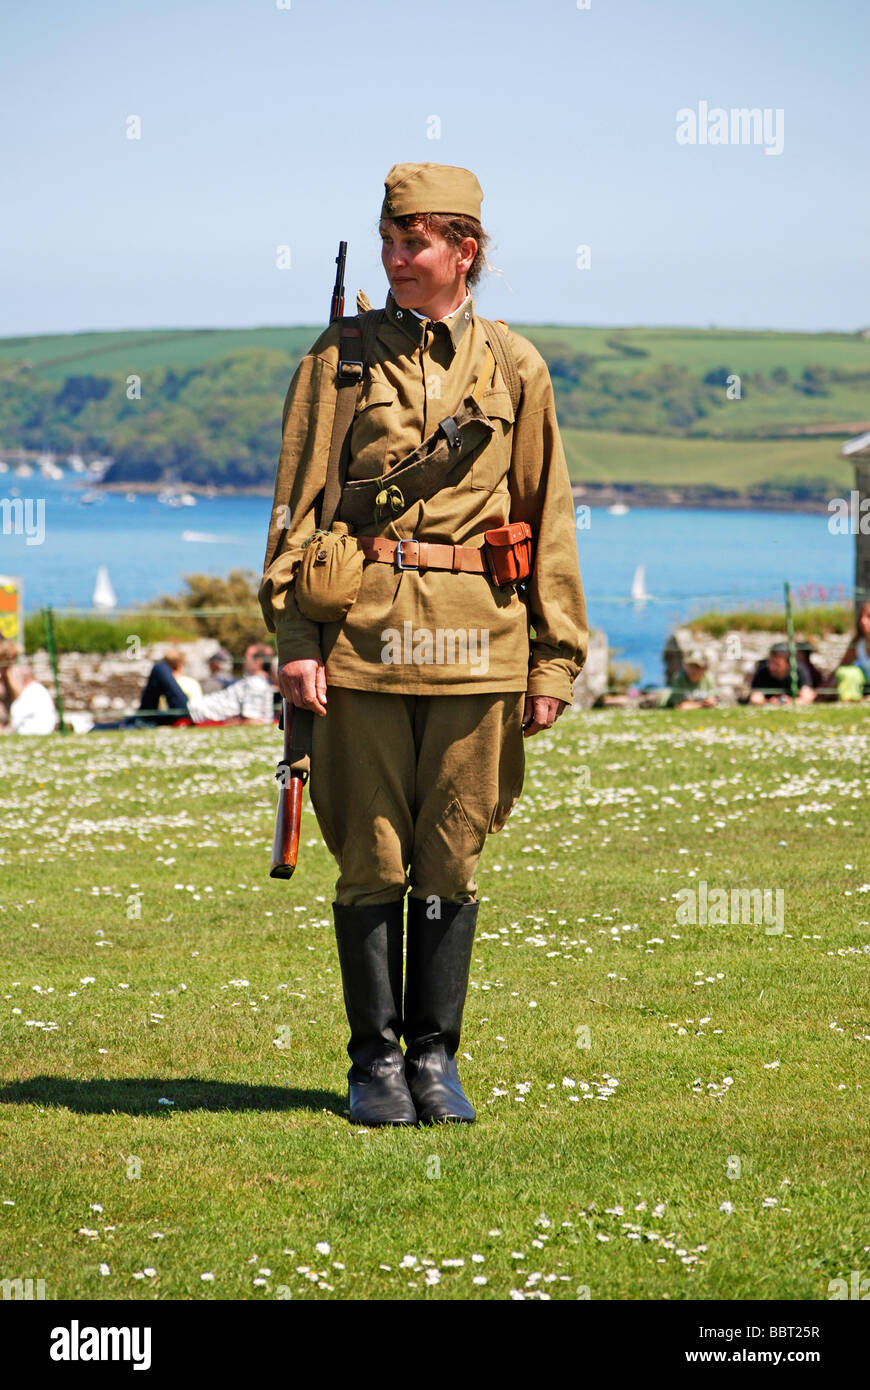 a 'world war two' female russian soldier at a military day in falmouth, cornwall, uk - Stock Image